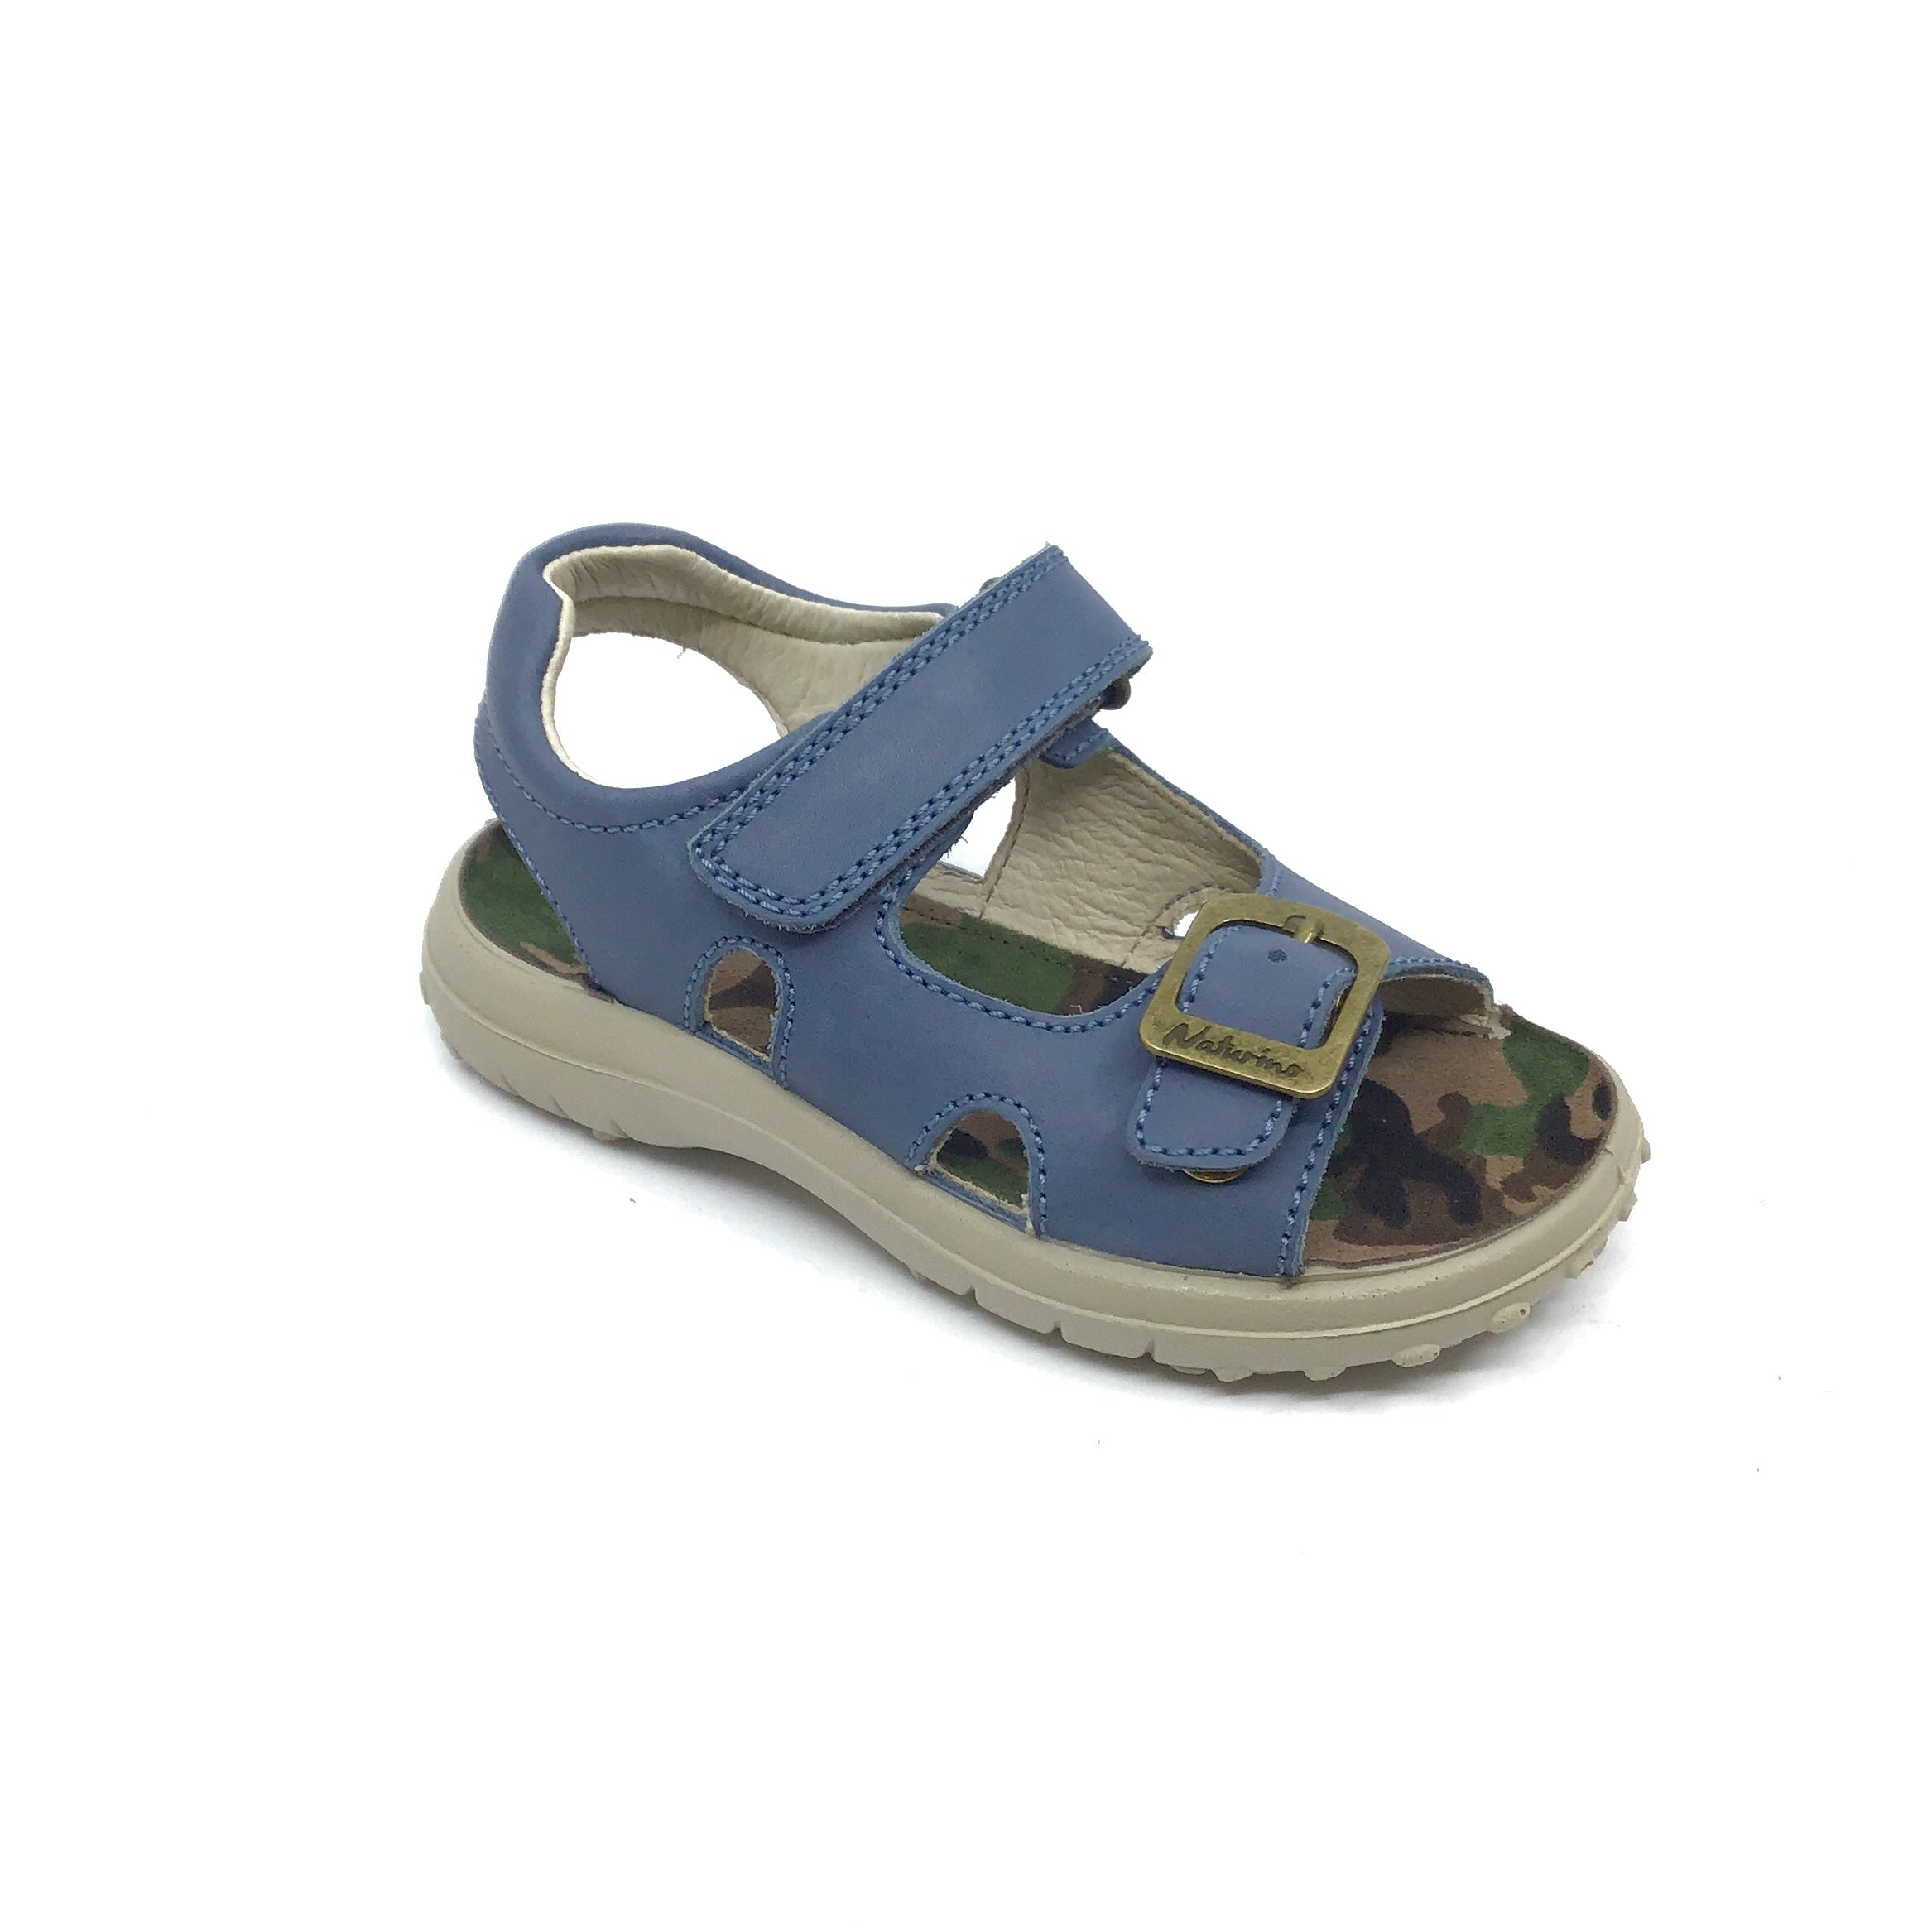 Naturino Blue Sandal with Velcro and Buckle